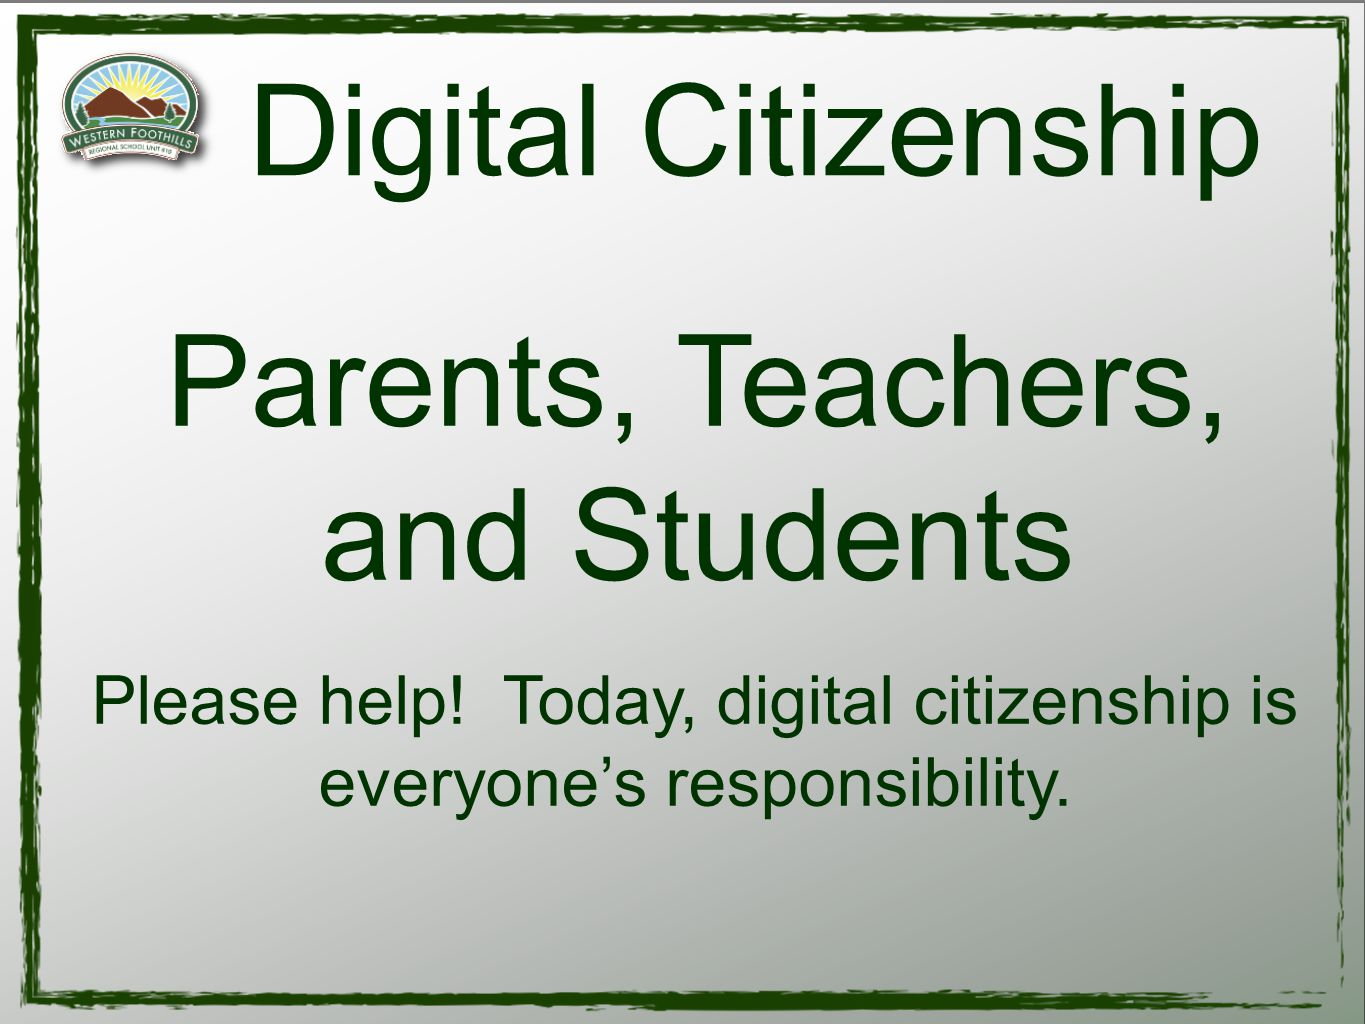 Please help. Today, digital citizenship is everyone's responsibility.